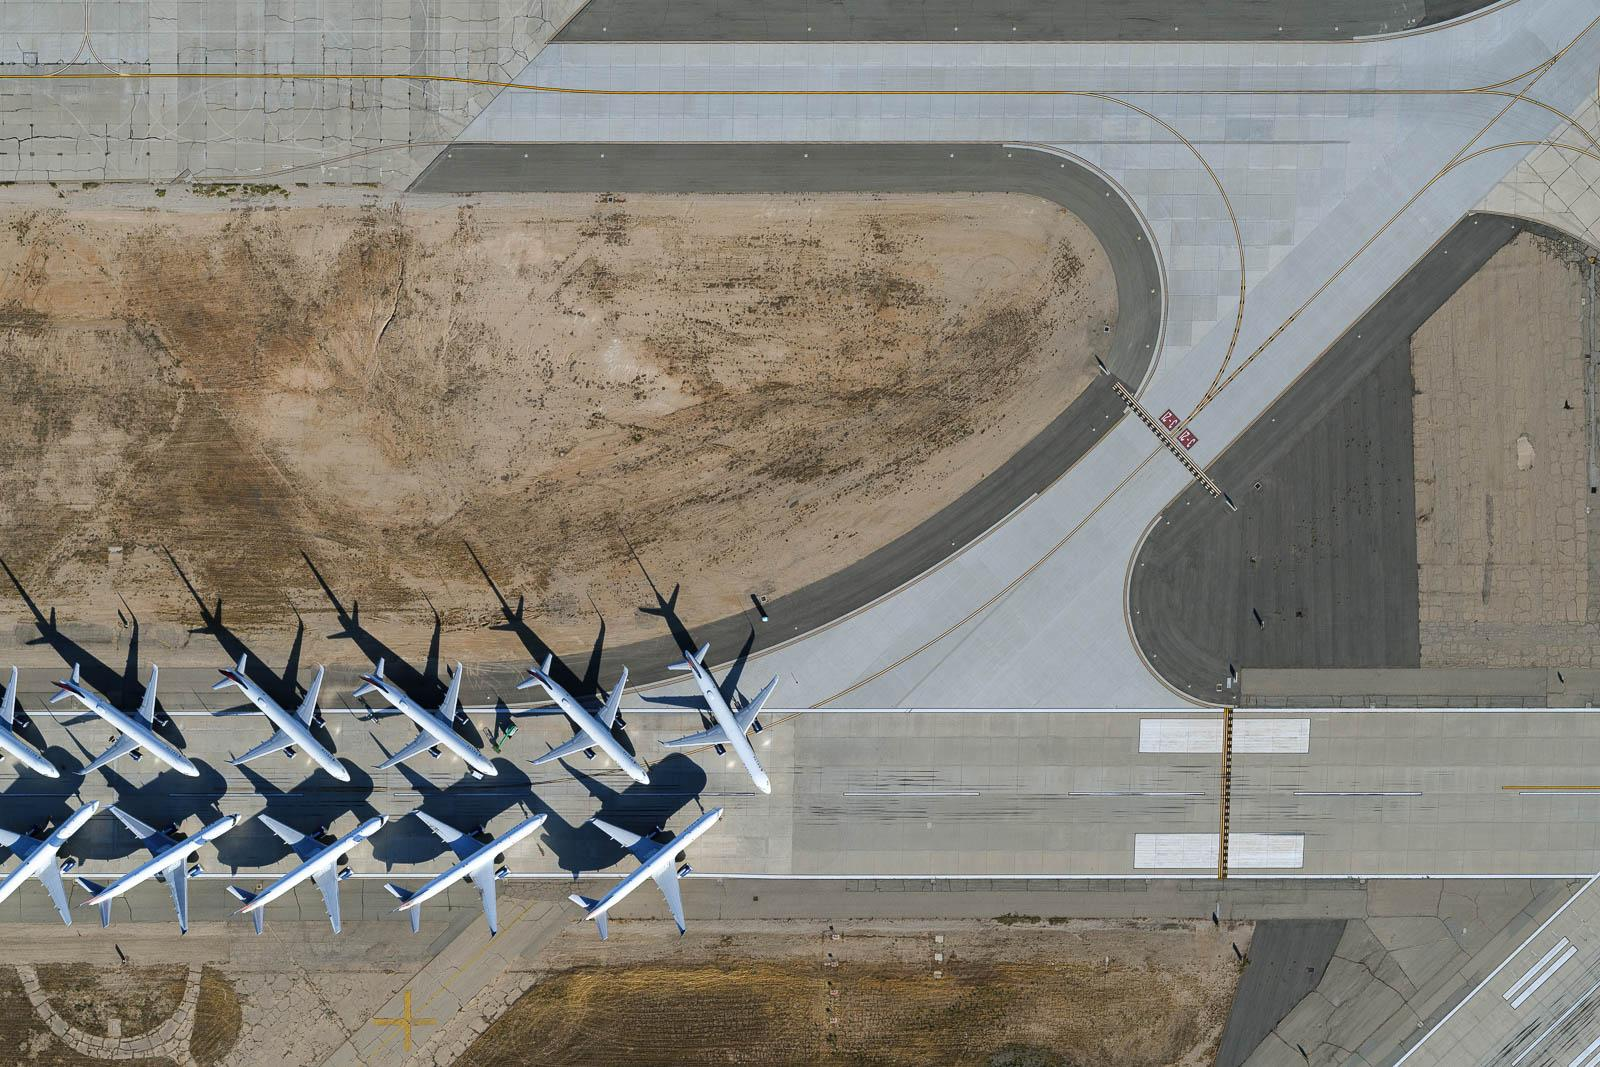 Southern California Logistics airplane storage in Victorville, CA